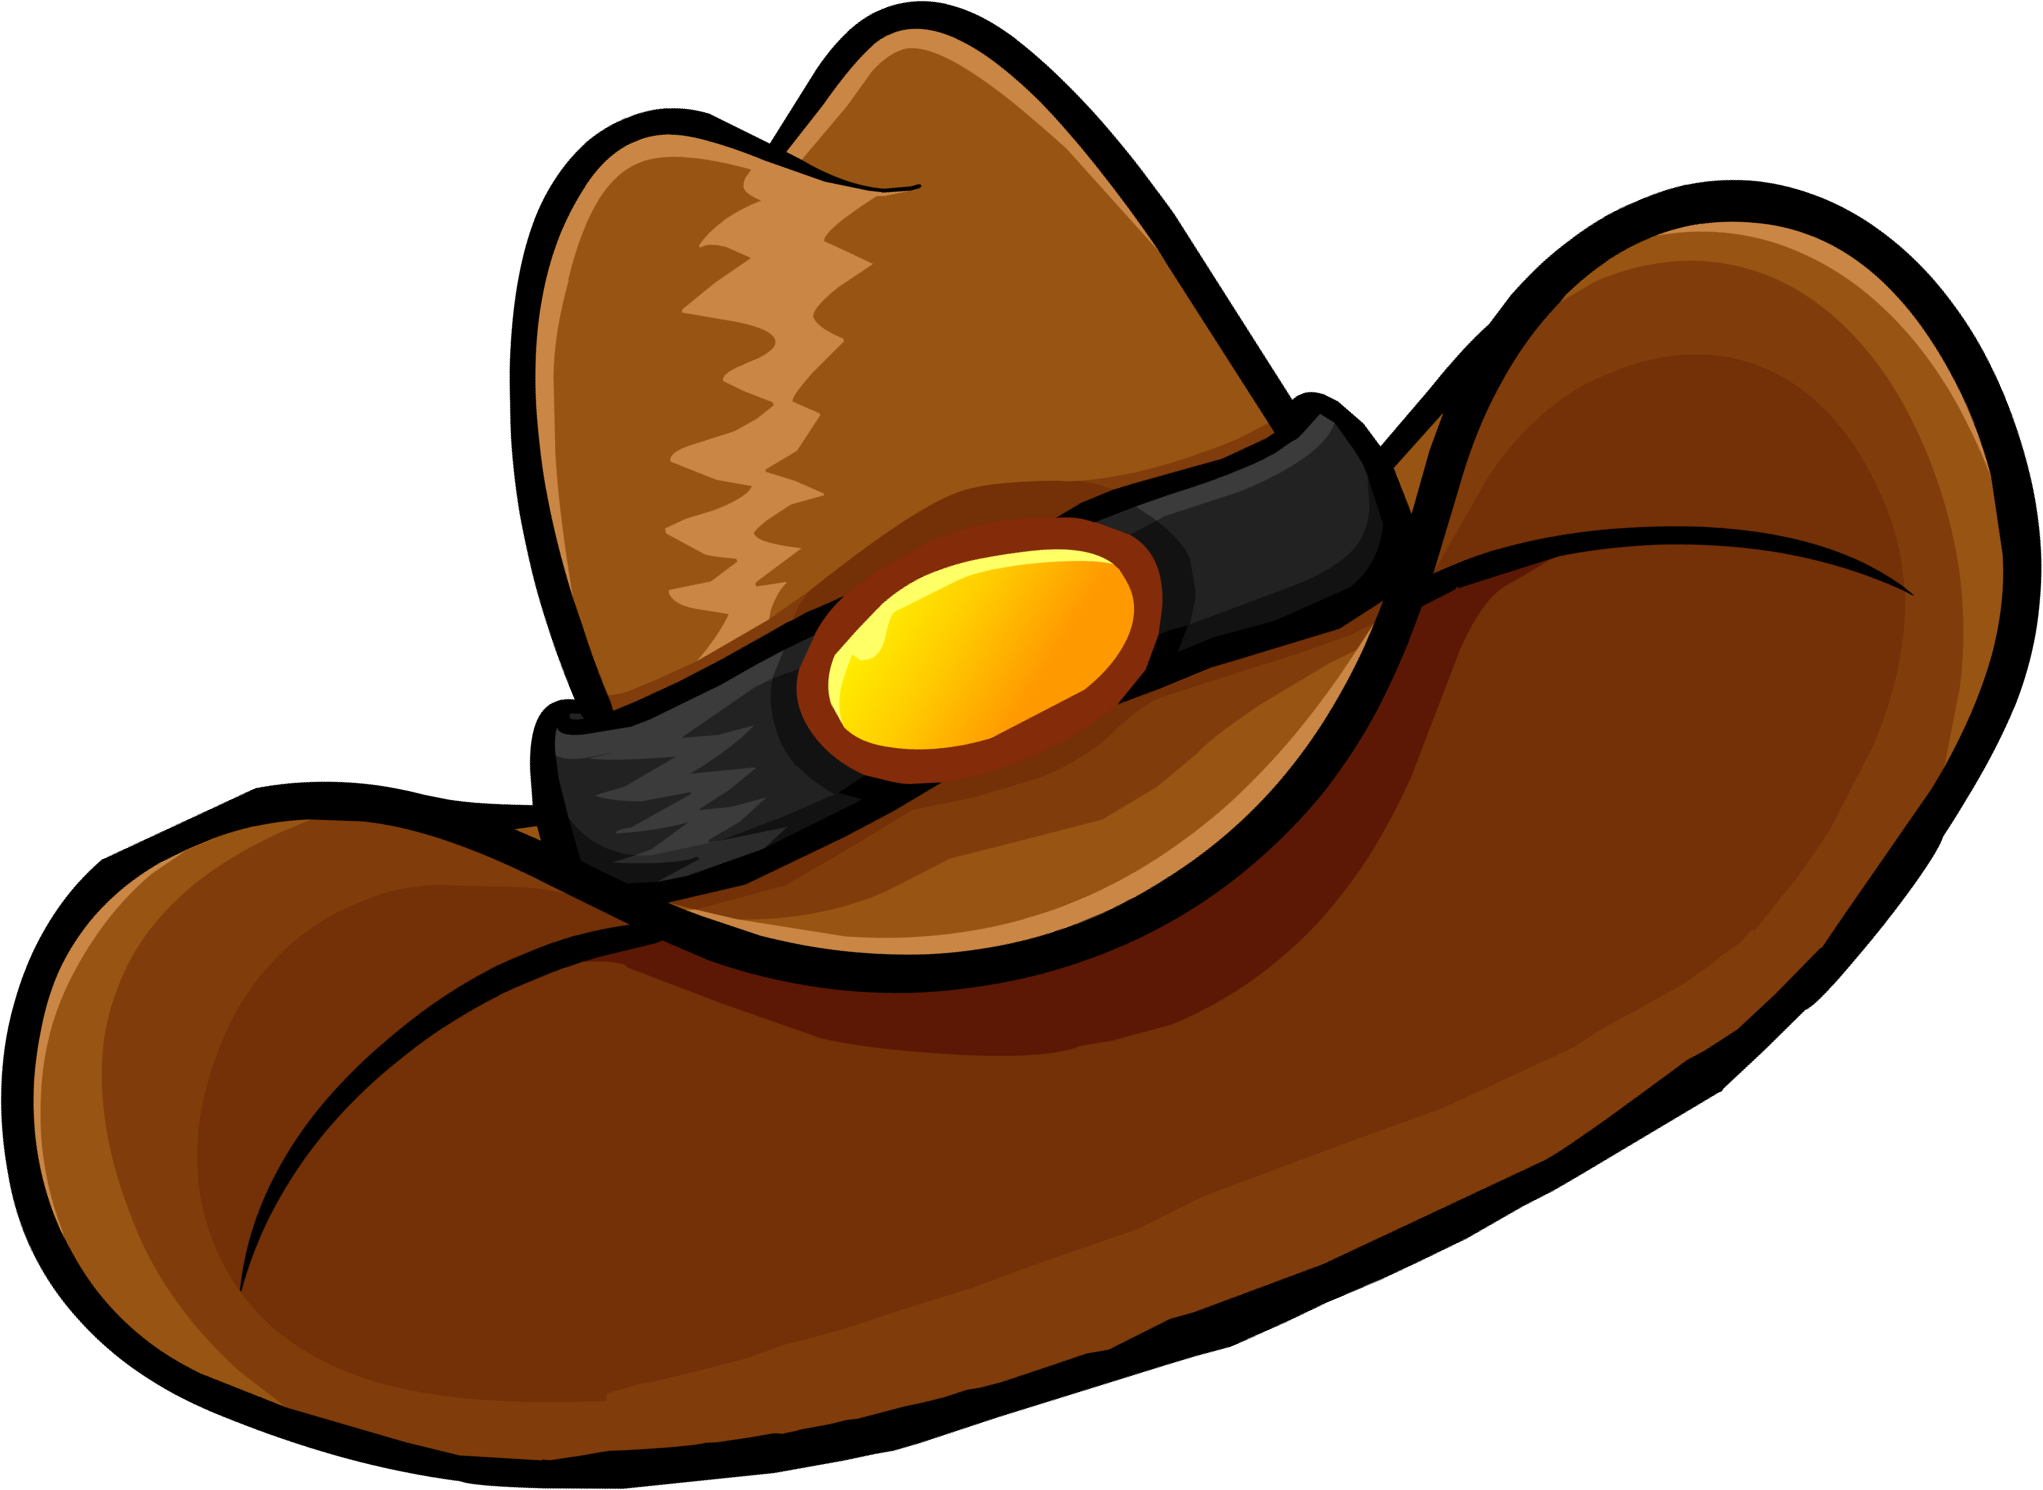 Cowboy hat transparent images all png 7